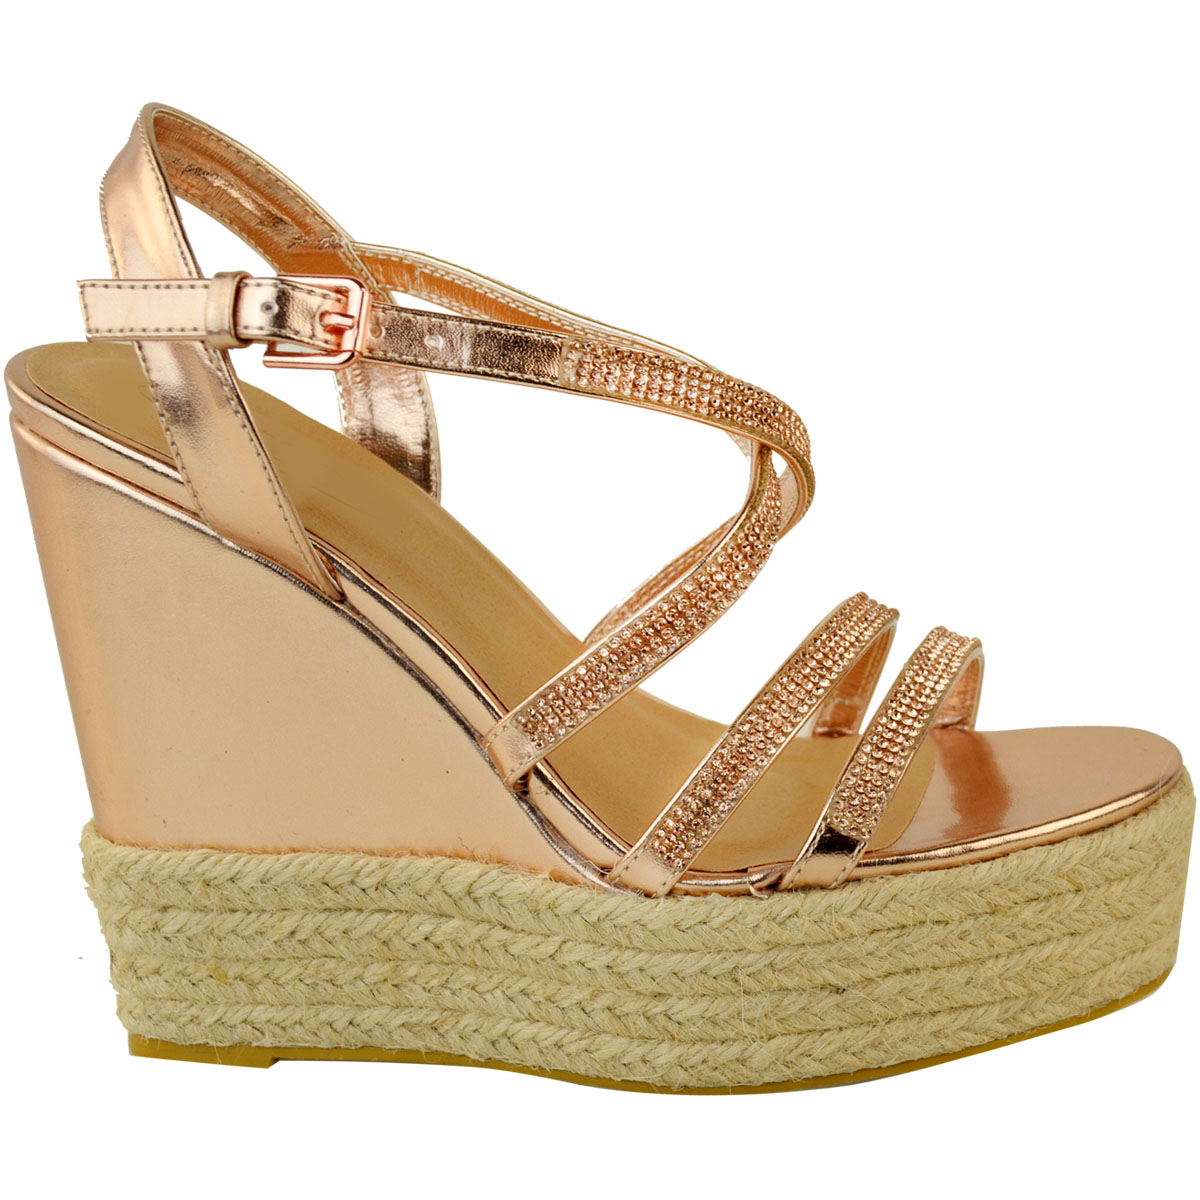 Womens-Ladies-Strappy-Diamante-Wedge-High-Heels-Sandals-Platforms-Shoes-Size-UK thumbnail 14